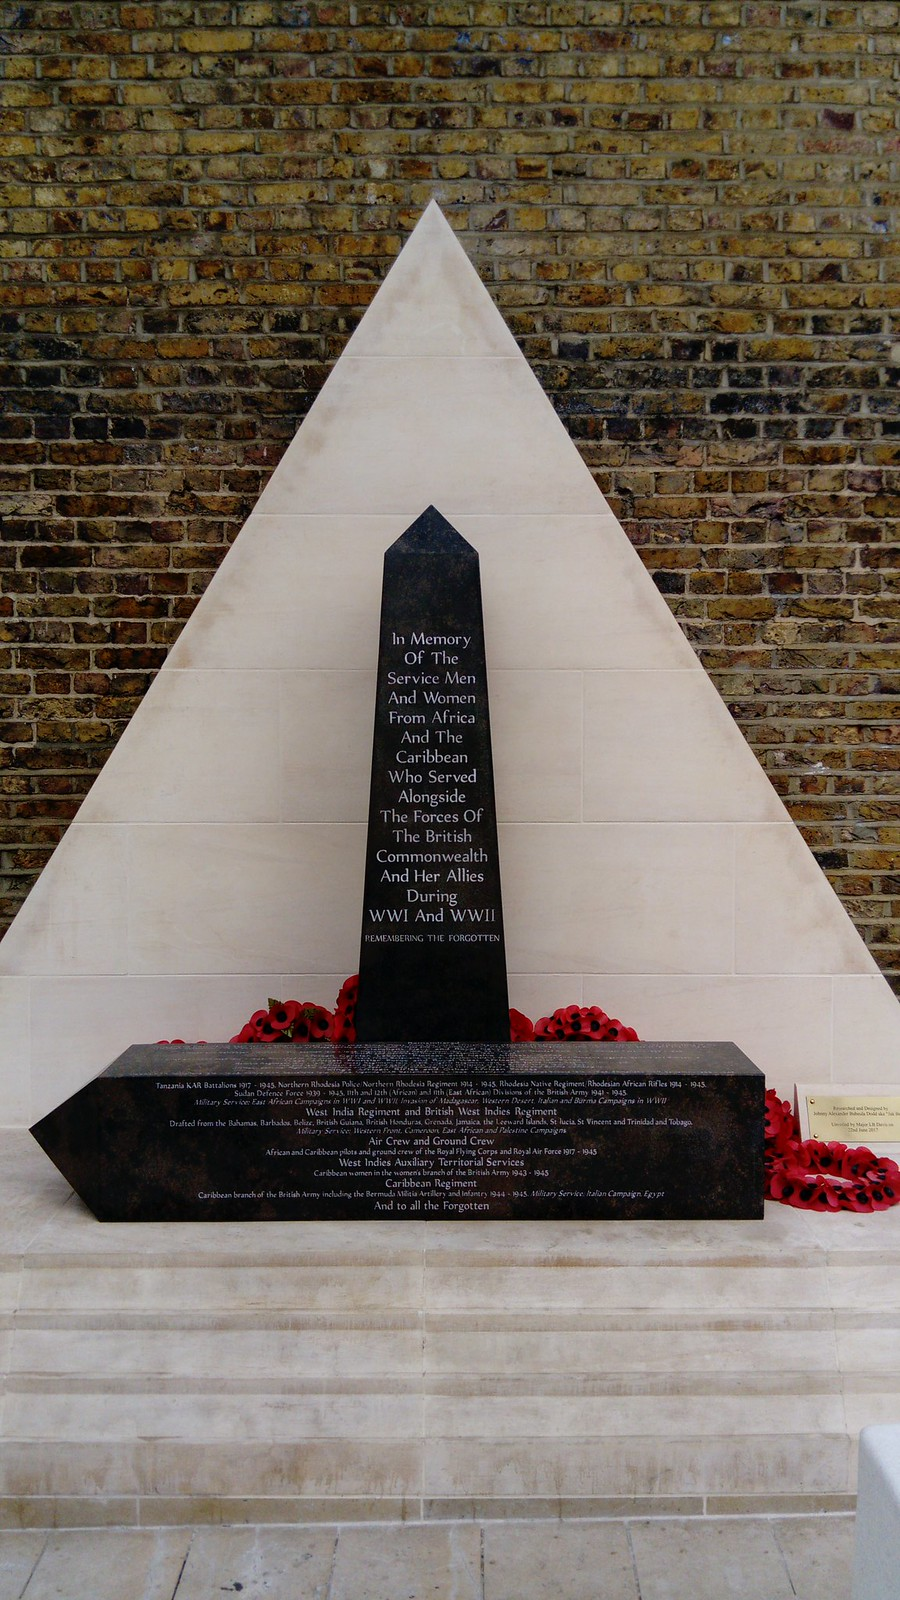 War Memorial for Men and Women from Africa and the Caribbean, Windrush Square Brixton SWC Short Walk 39 - Brockwell Park (Herne Hill Circular or to Brixton)